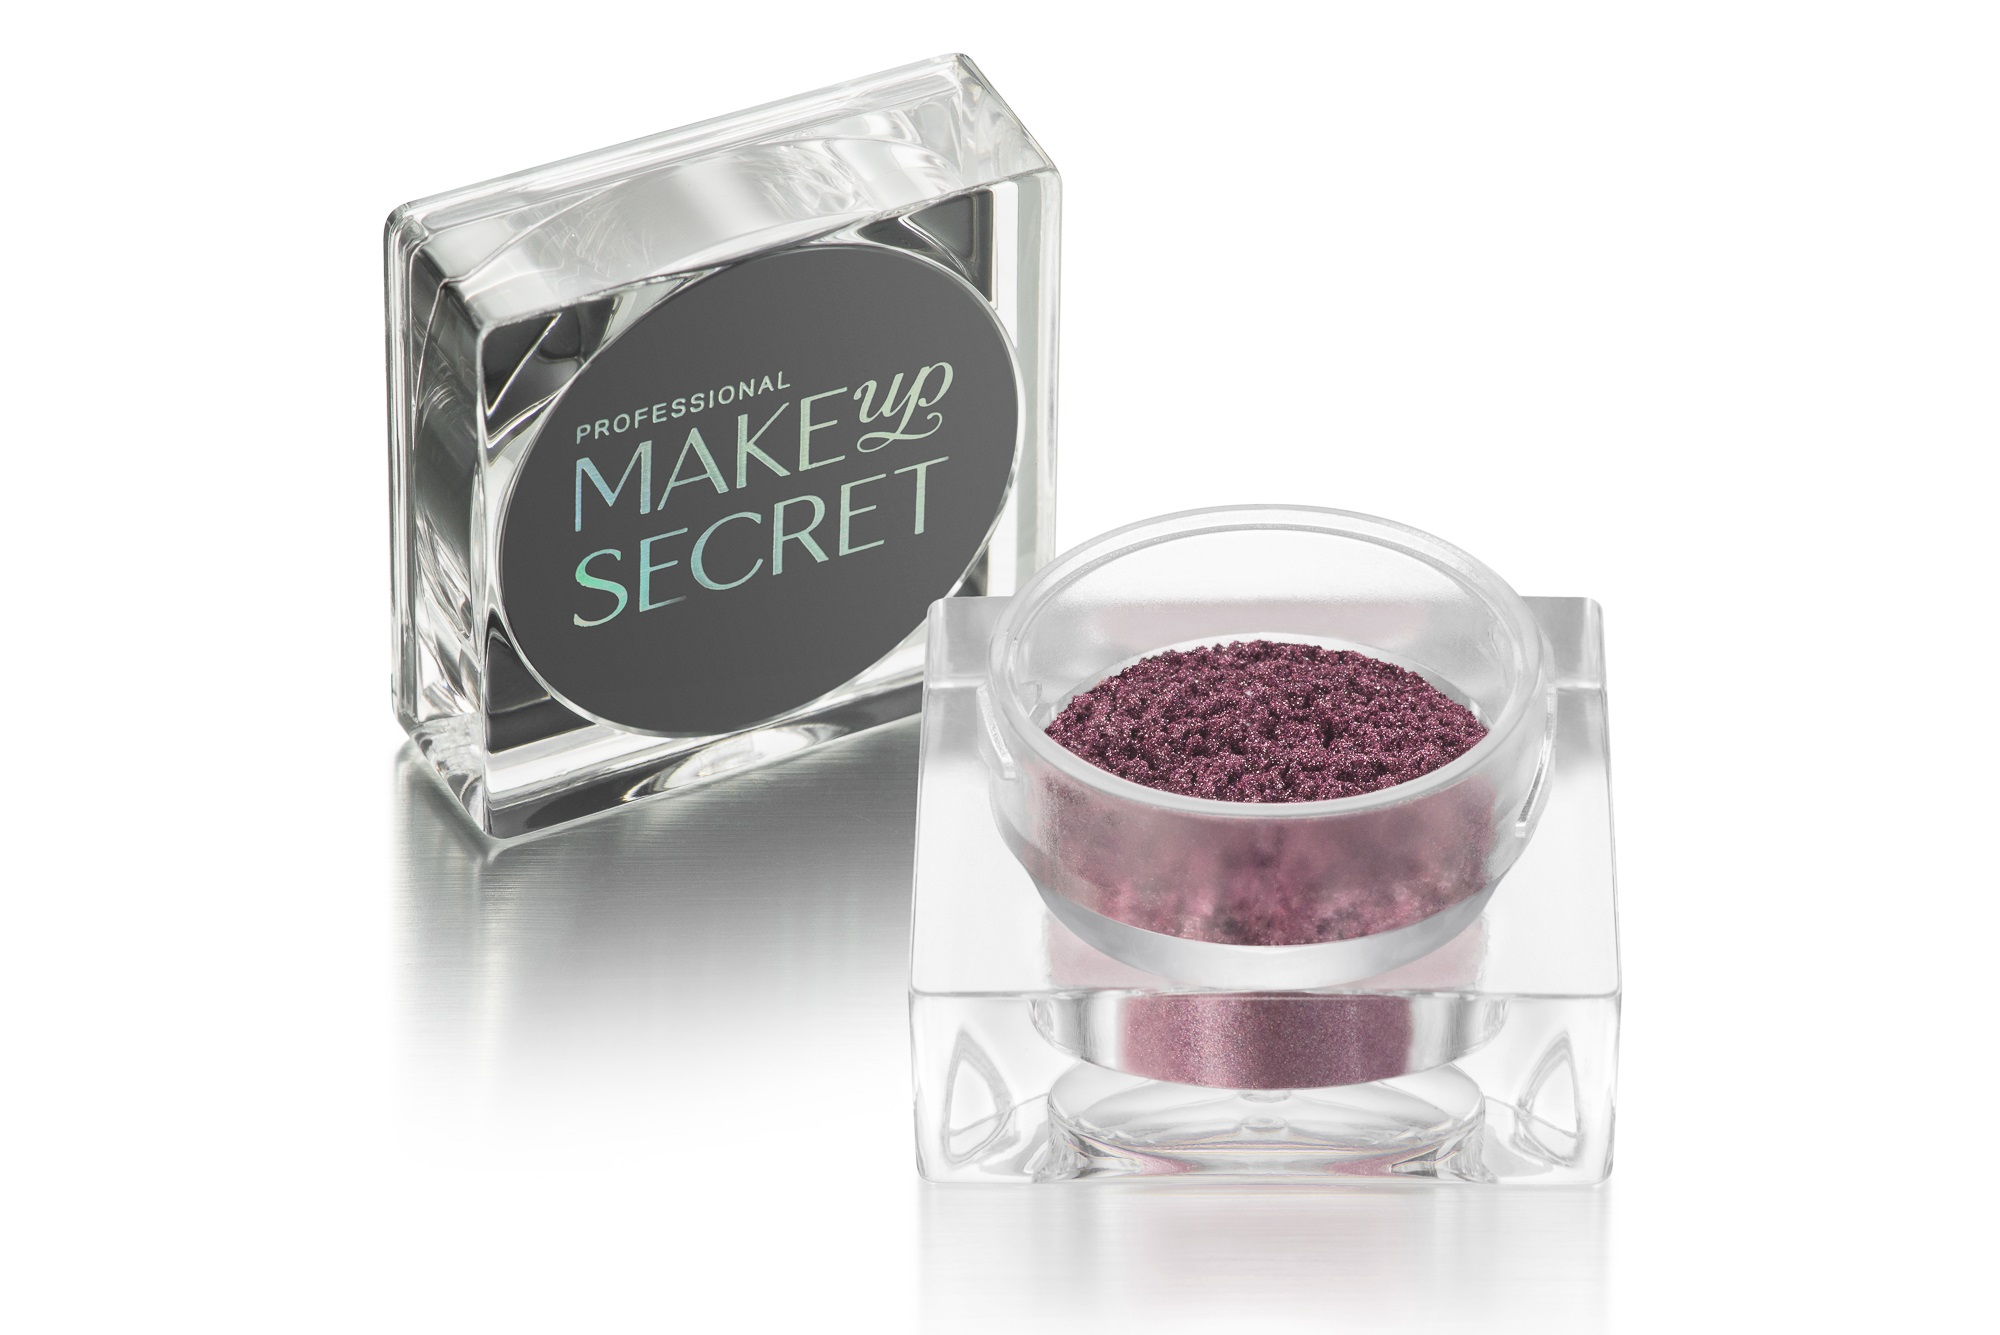 Пигменты Make up Secret MAKEUP EMOTIONS серии Love Story Ruby stone: фото